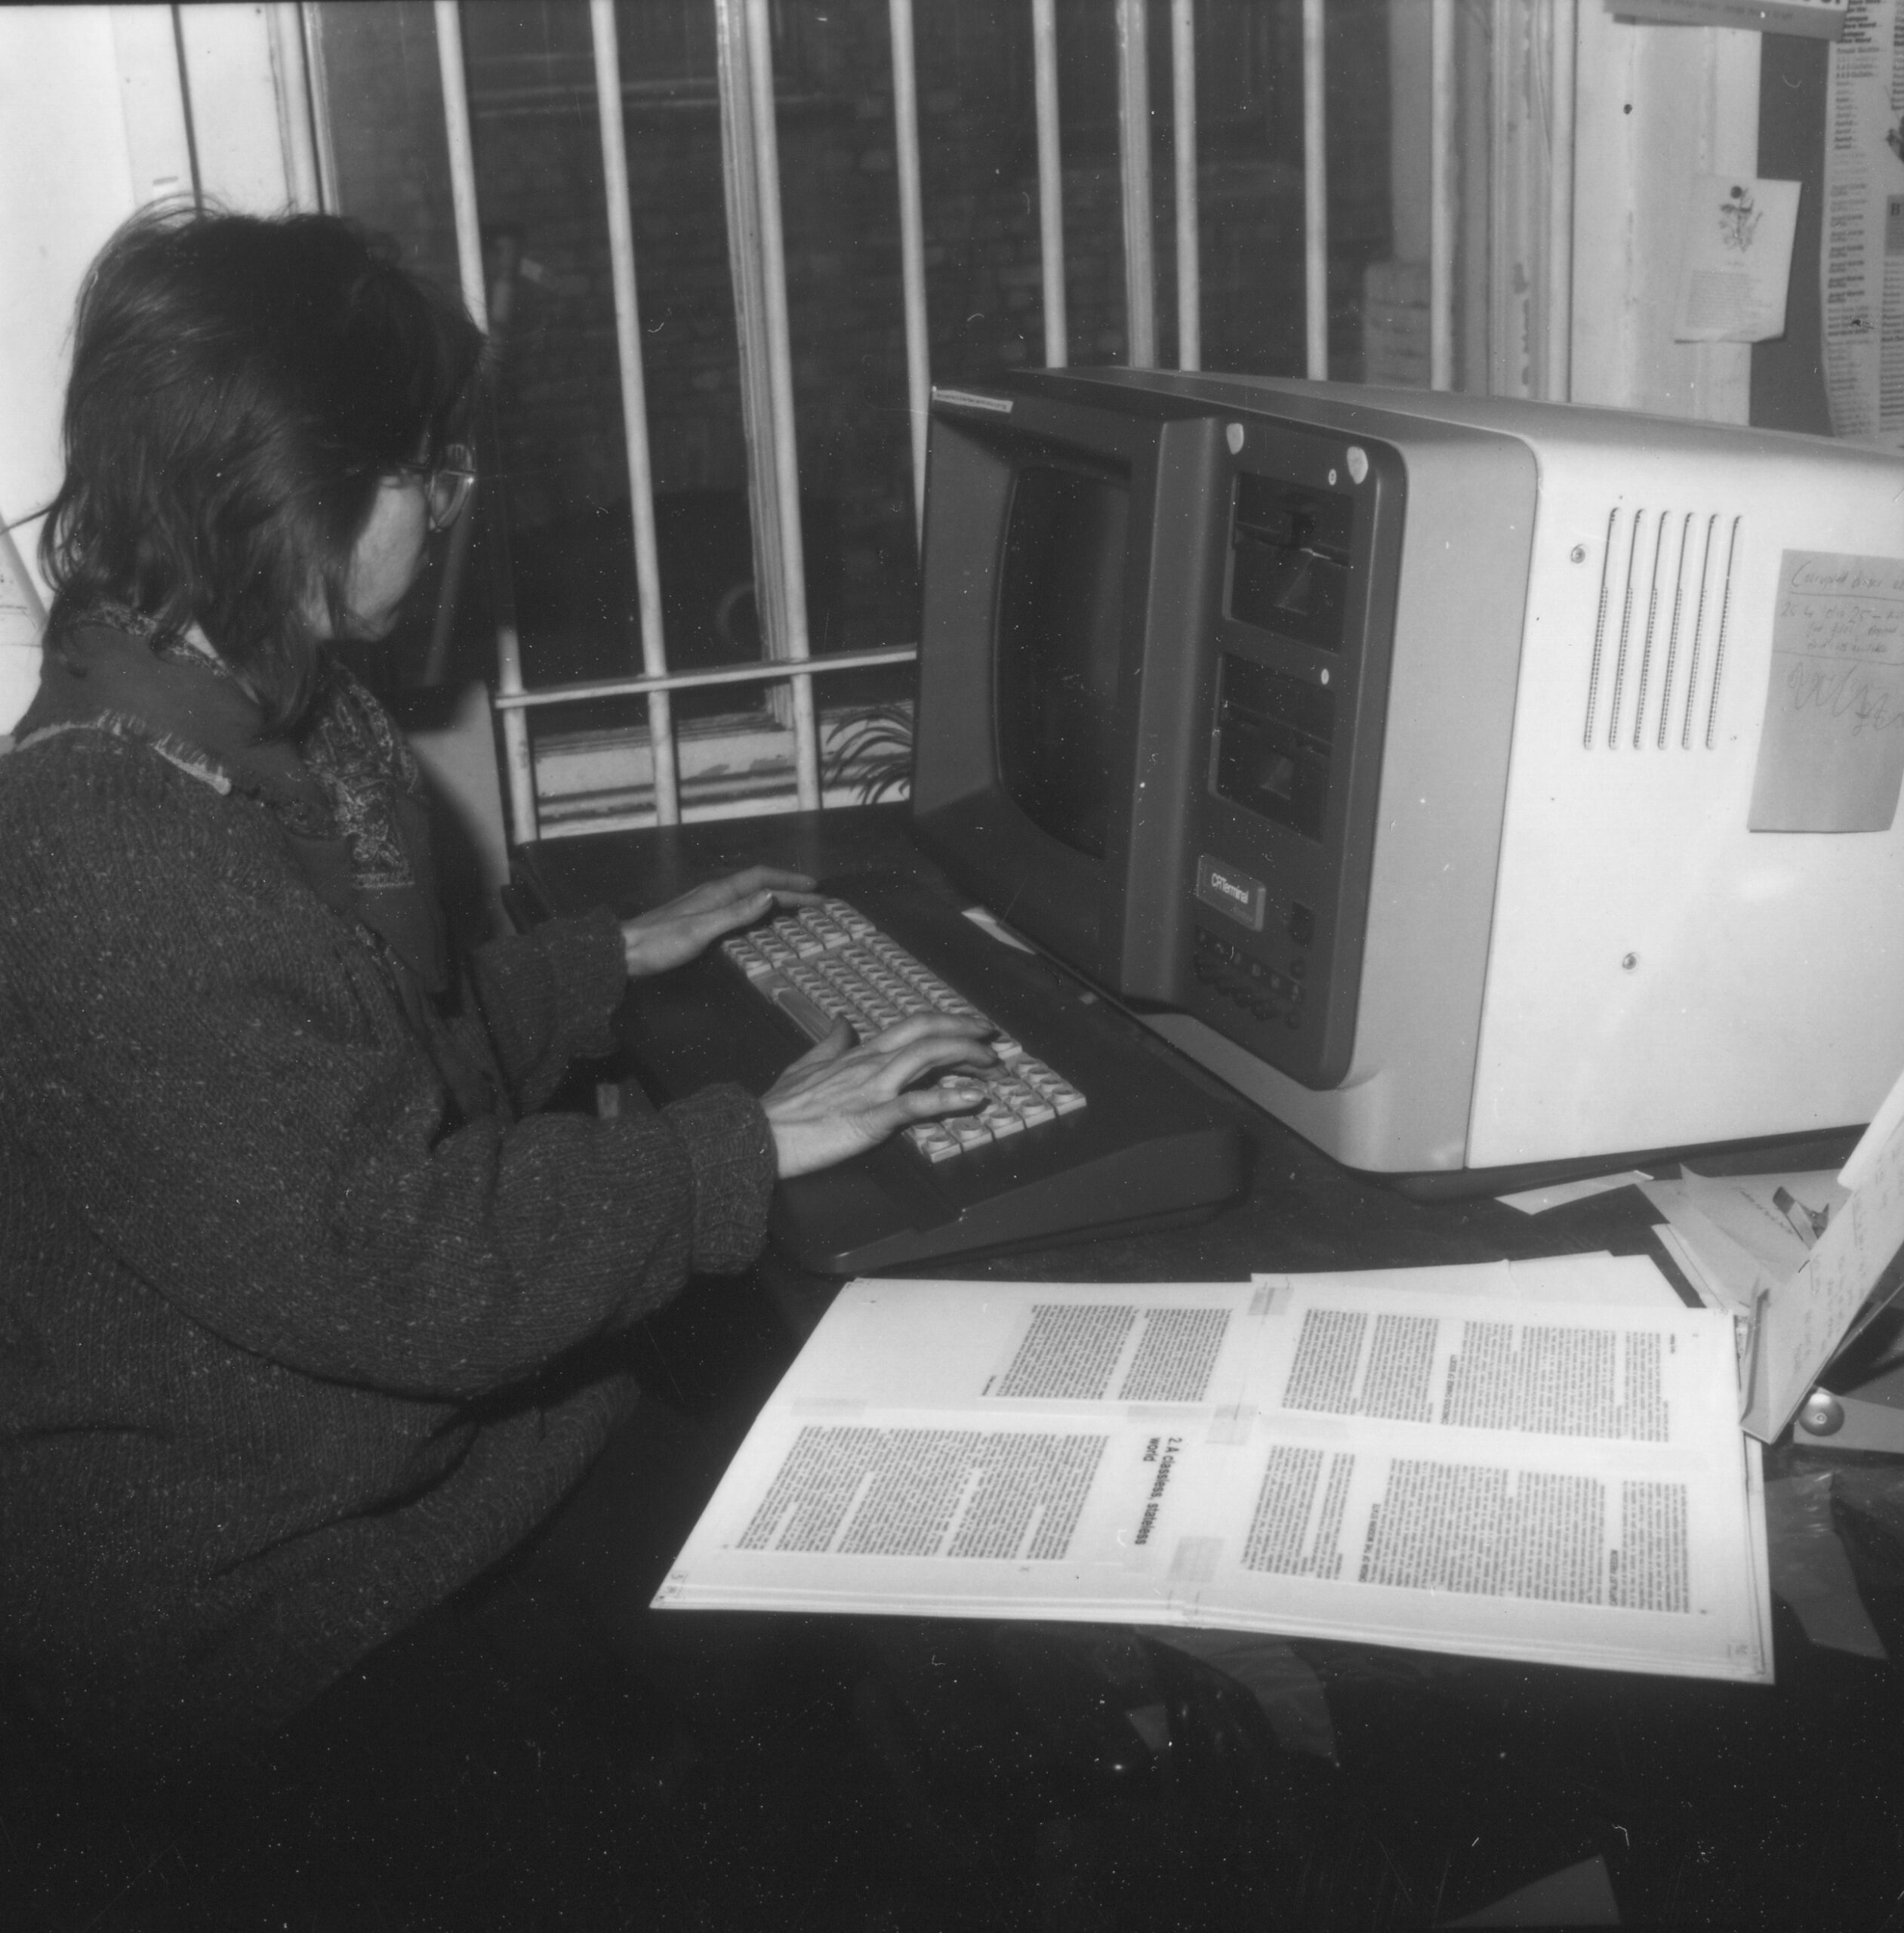 Person at desk with 1980s computer